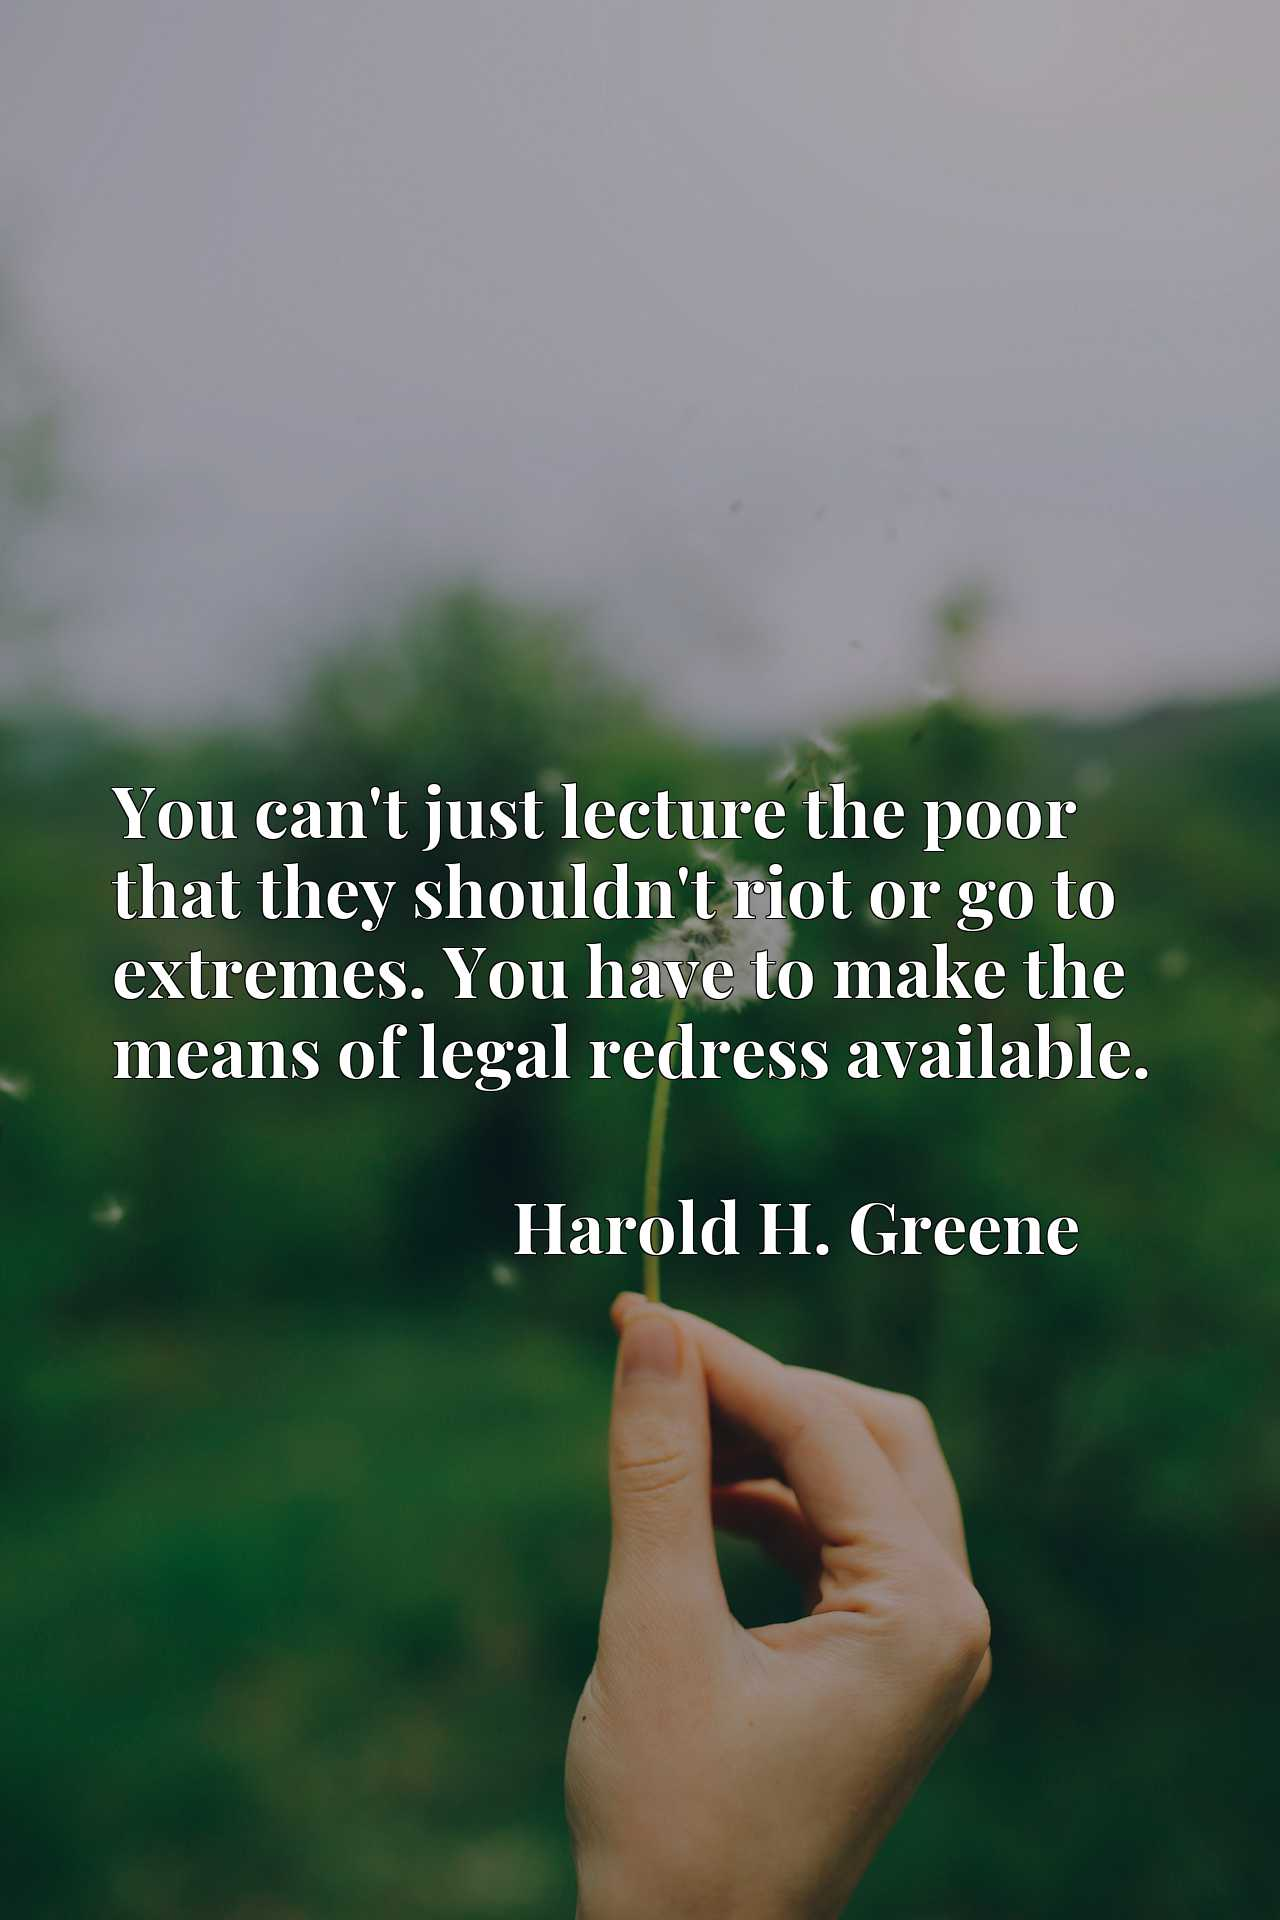 Quote Picture :You can't just lecture the poor that they shouldn't riot or go to extremes. You have to make the means of legal redress available.